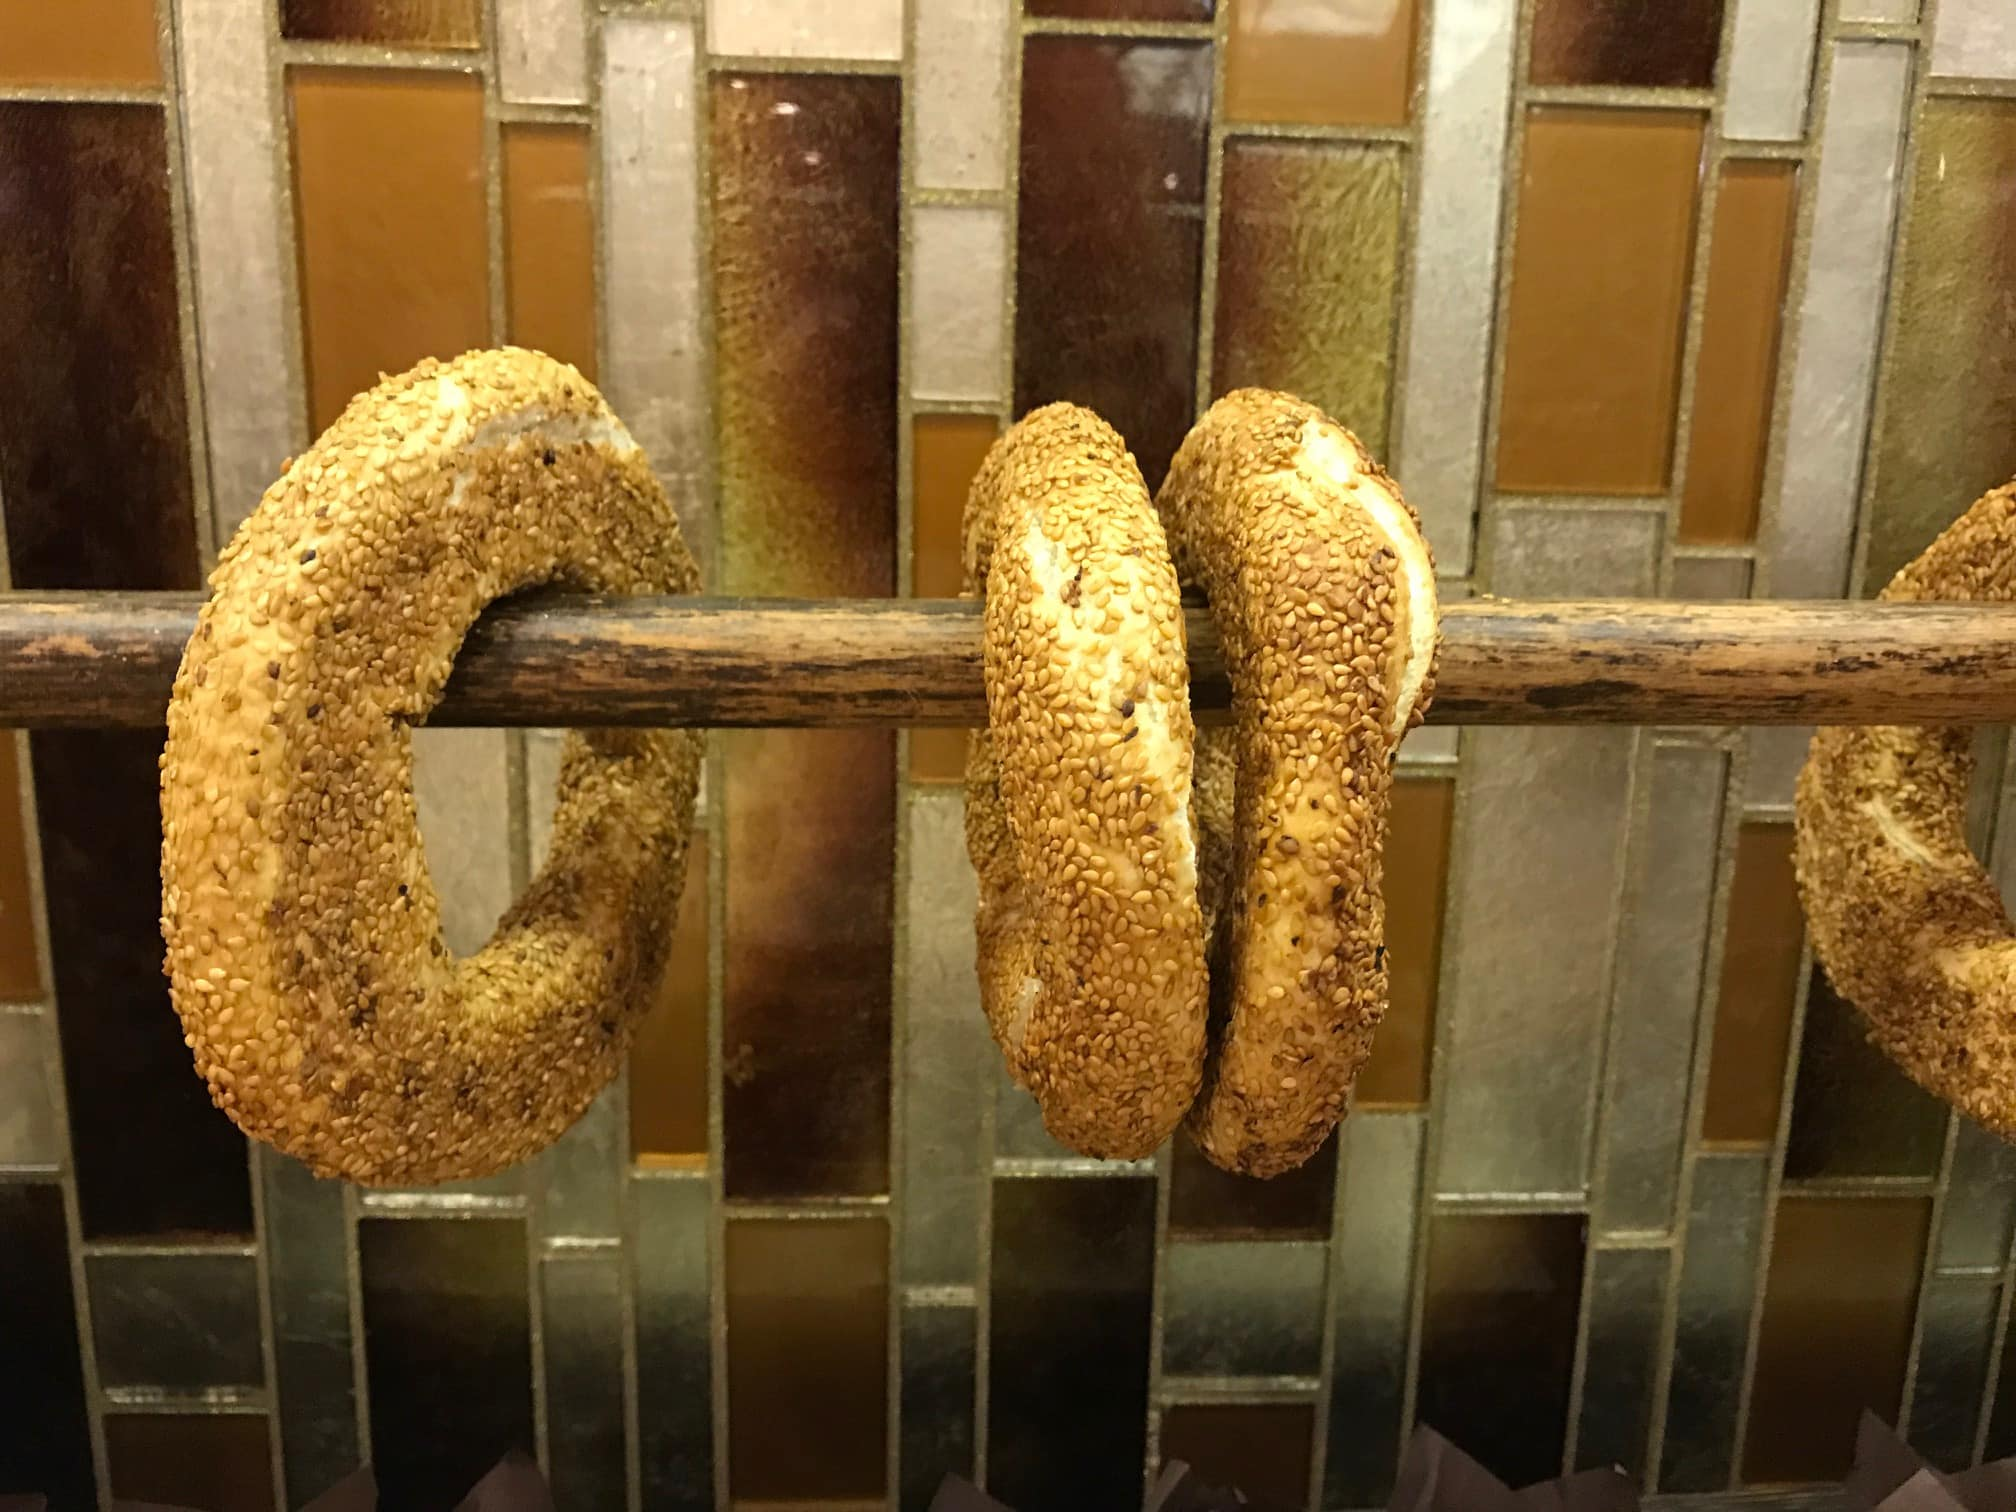 simit is a traditional Turkish food